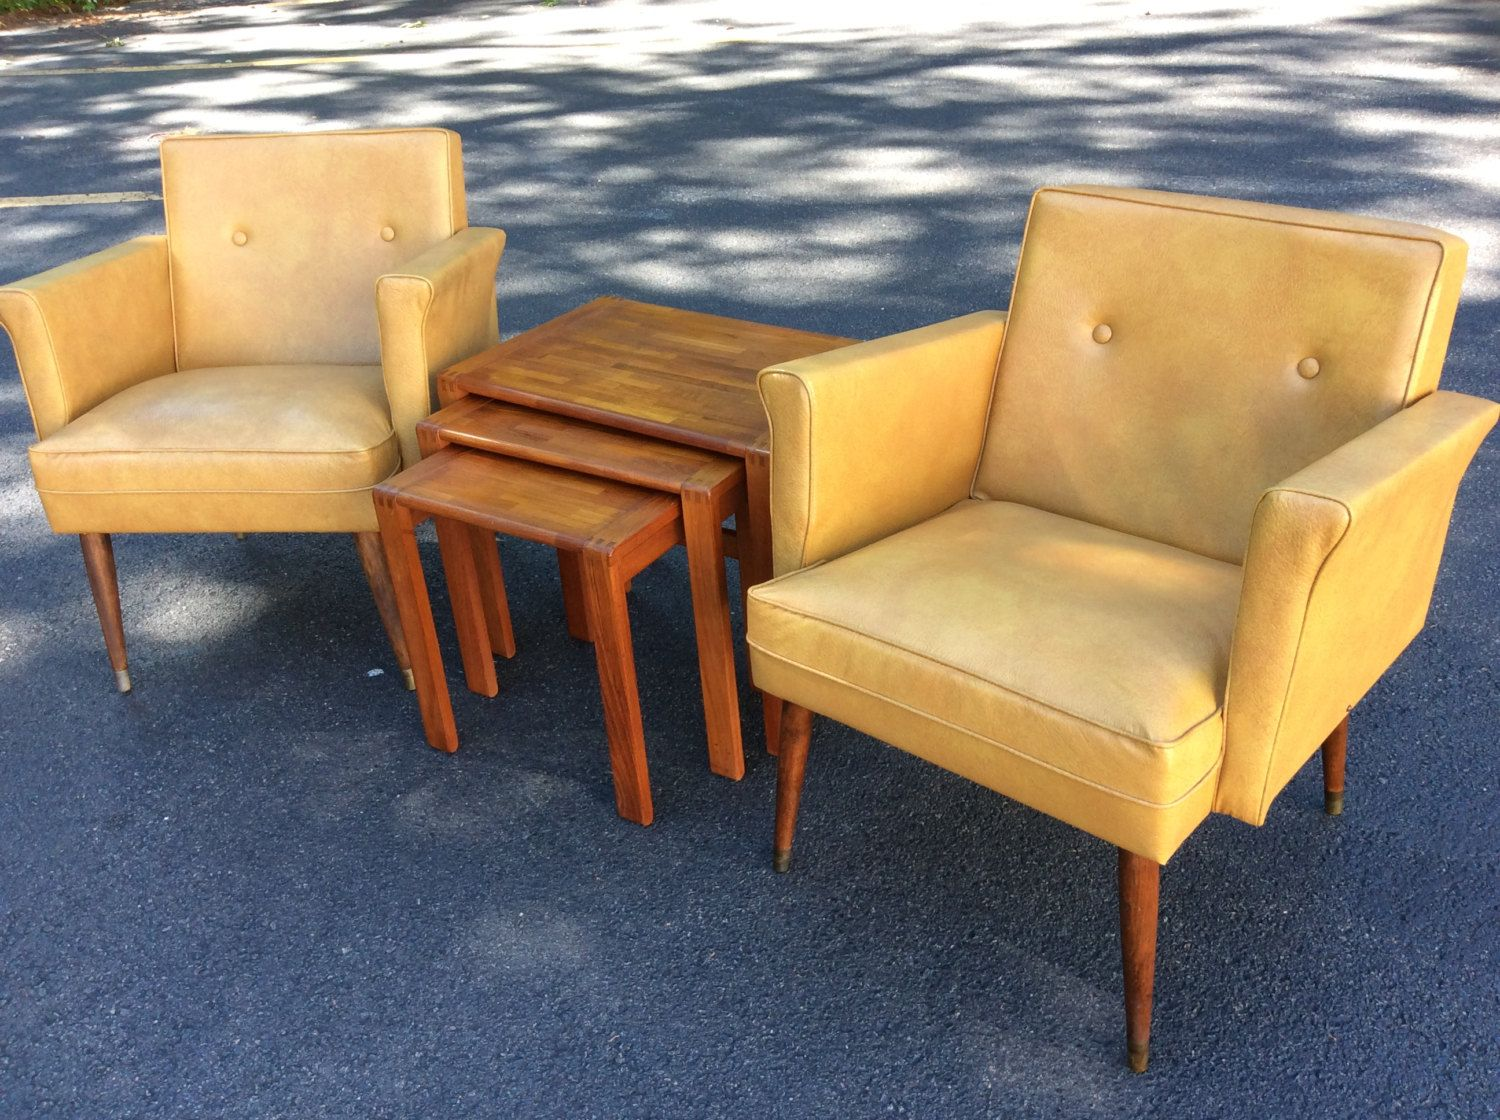 Two Mid Century Modern Side Chairs   Yellow Side Chairs   Fingerhut Mid. Two Mid Century Modern Side Chairs   Yellow Side Chairs